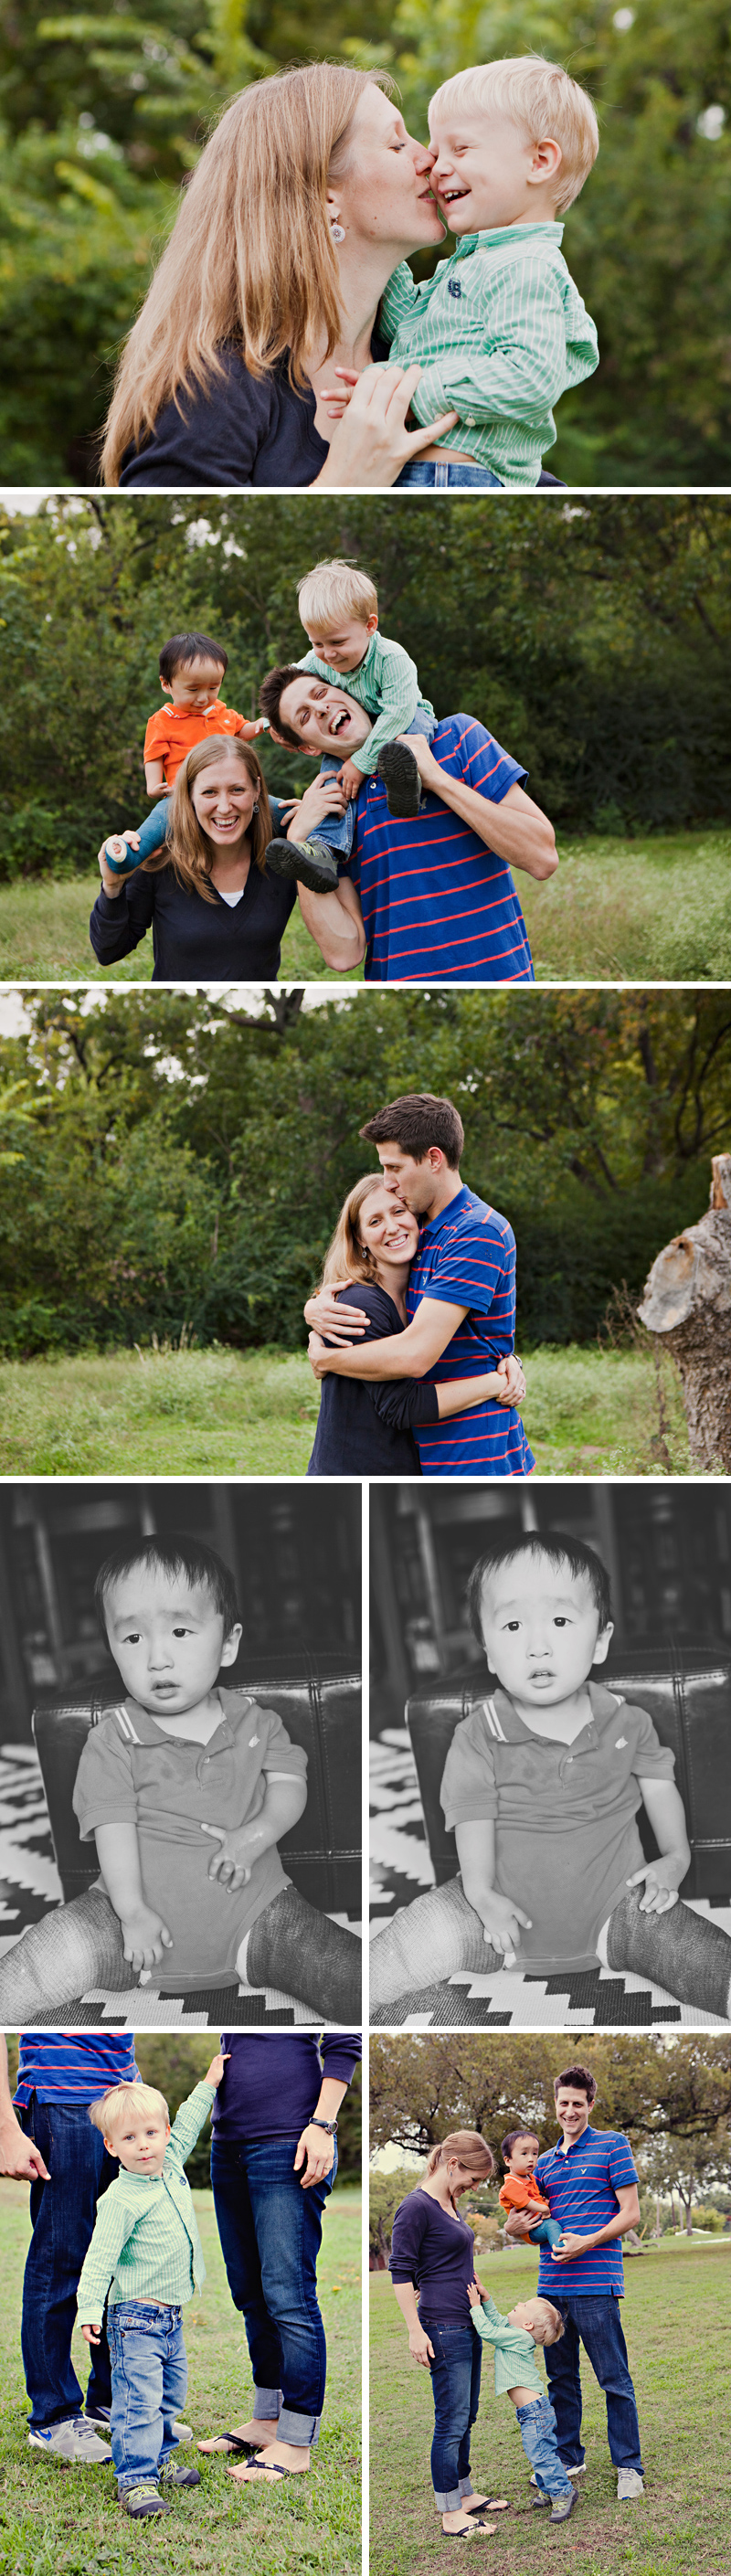 Dallas-Family-Photographerc041